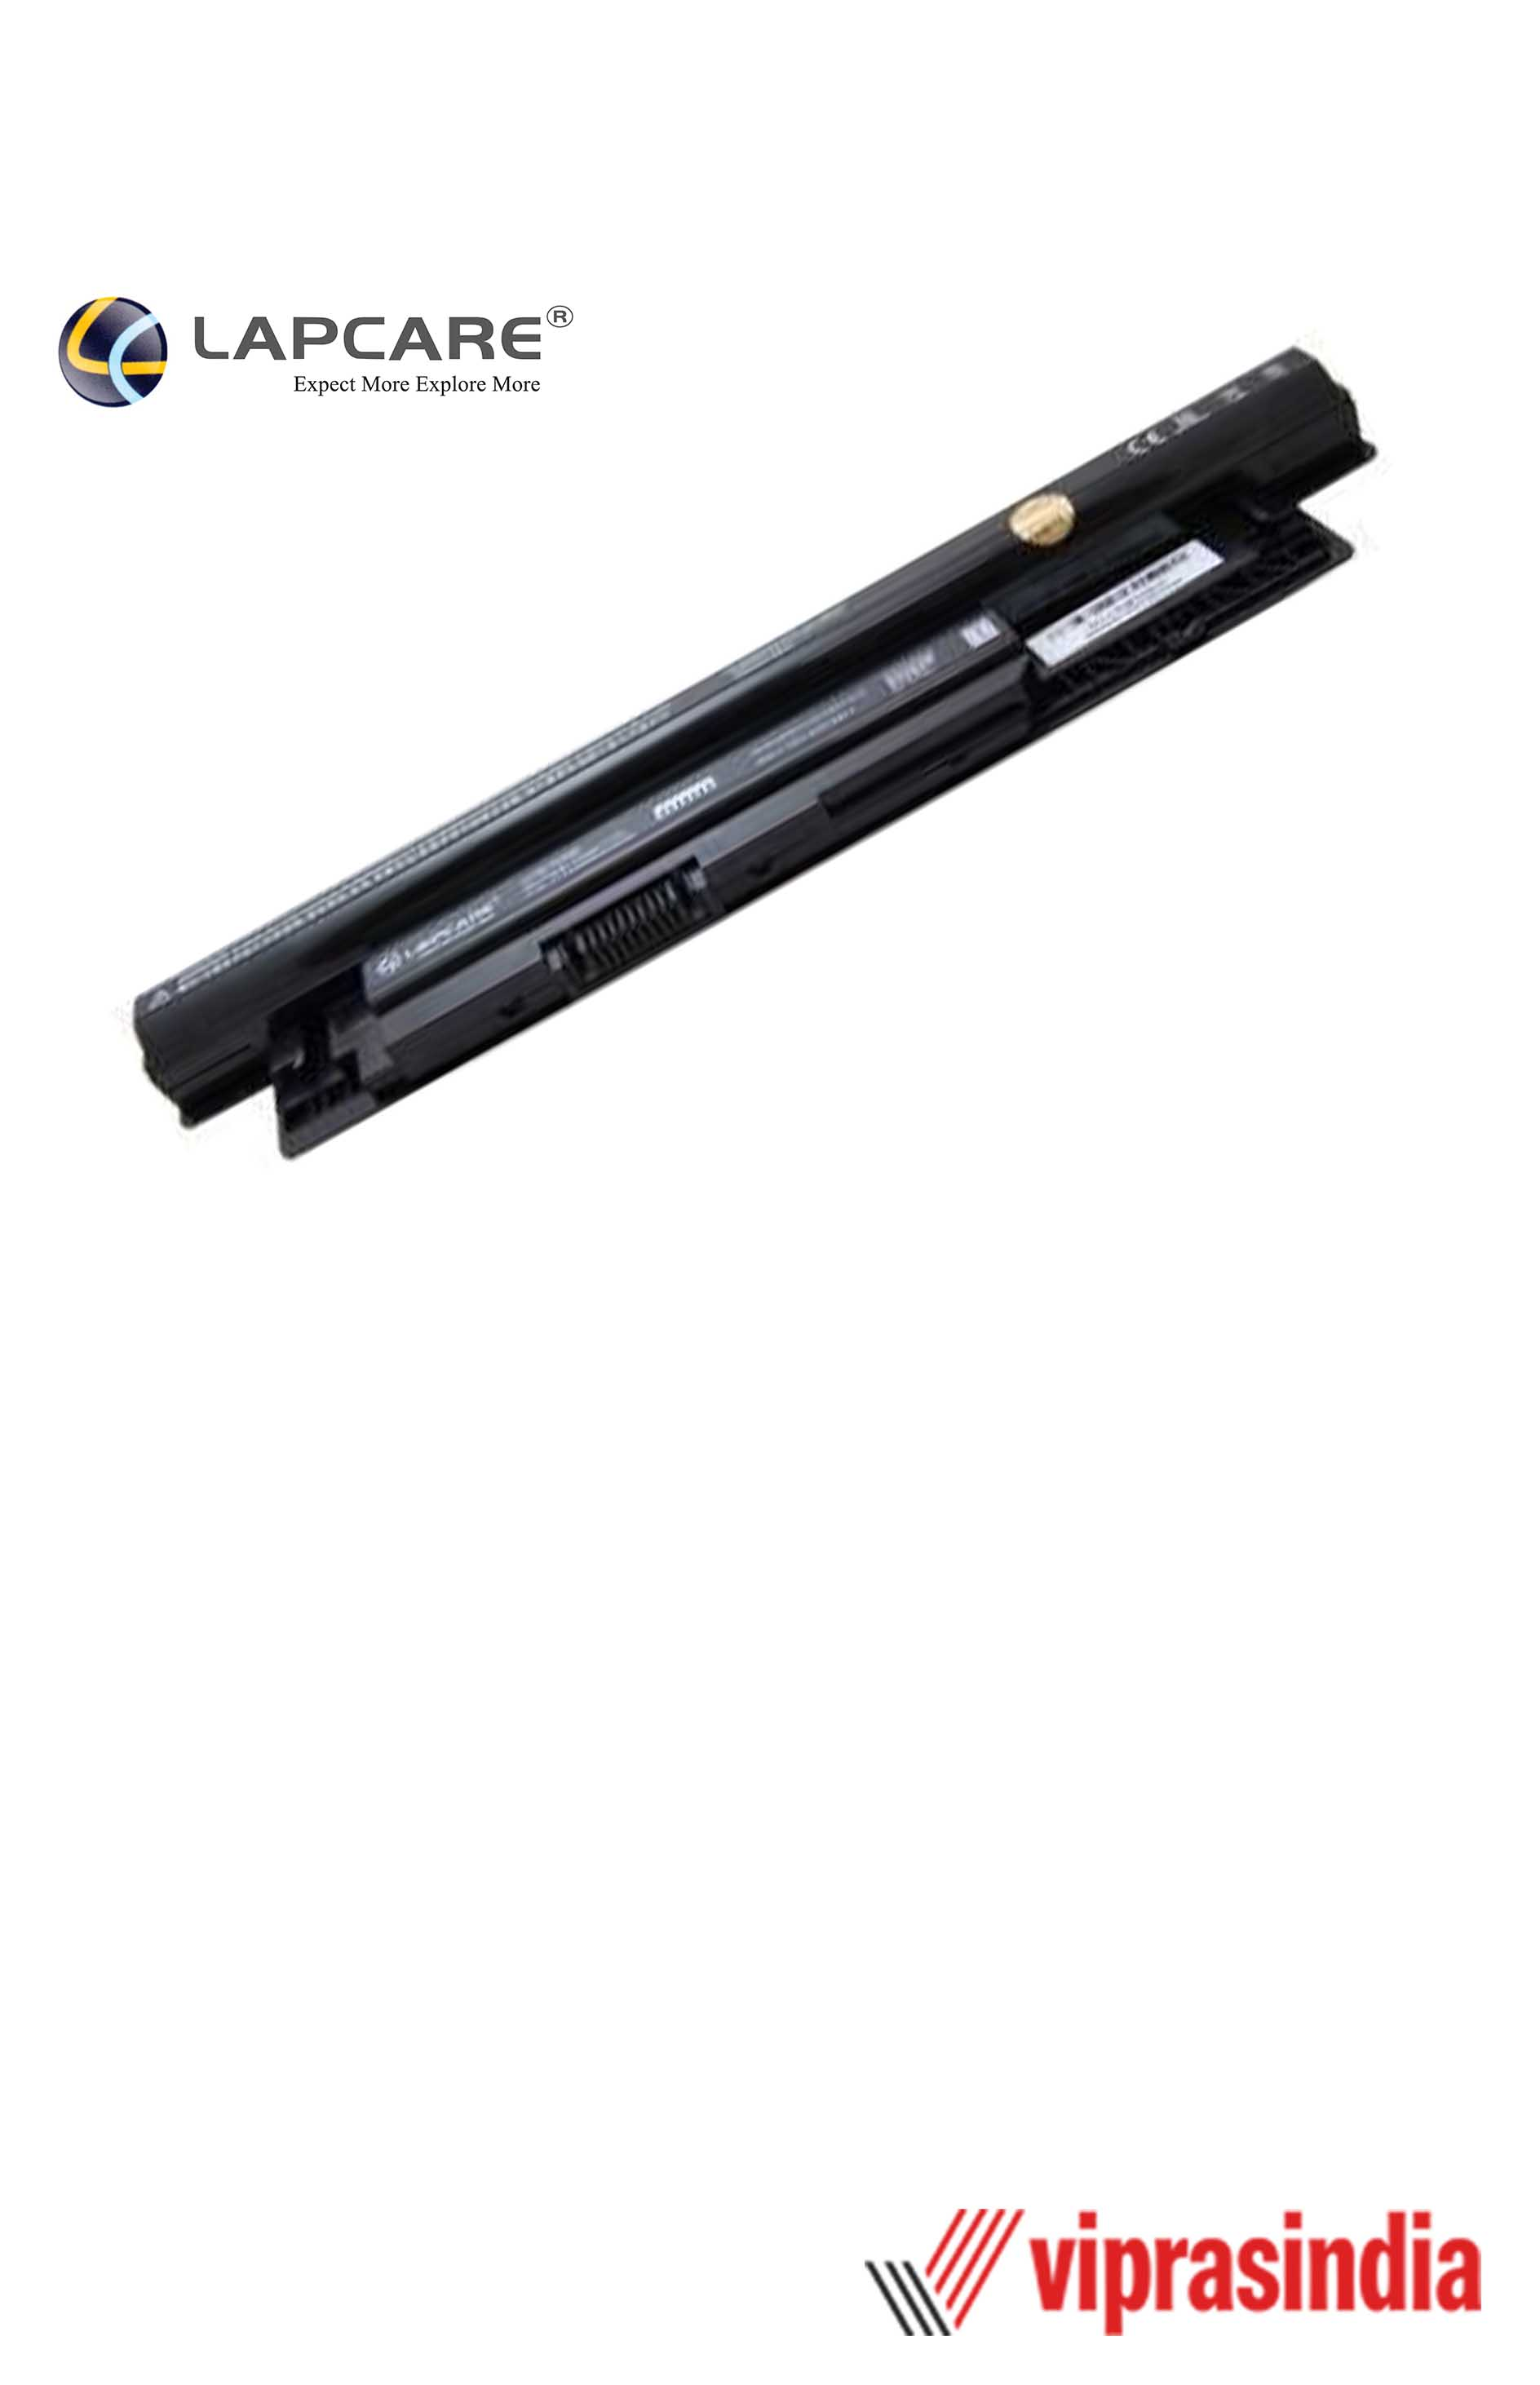 Laptop Battery Lapcare Compatible For 15R/14R 6C